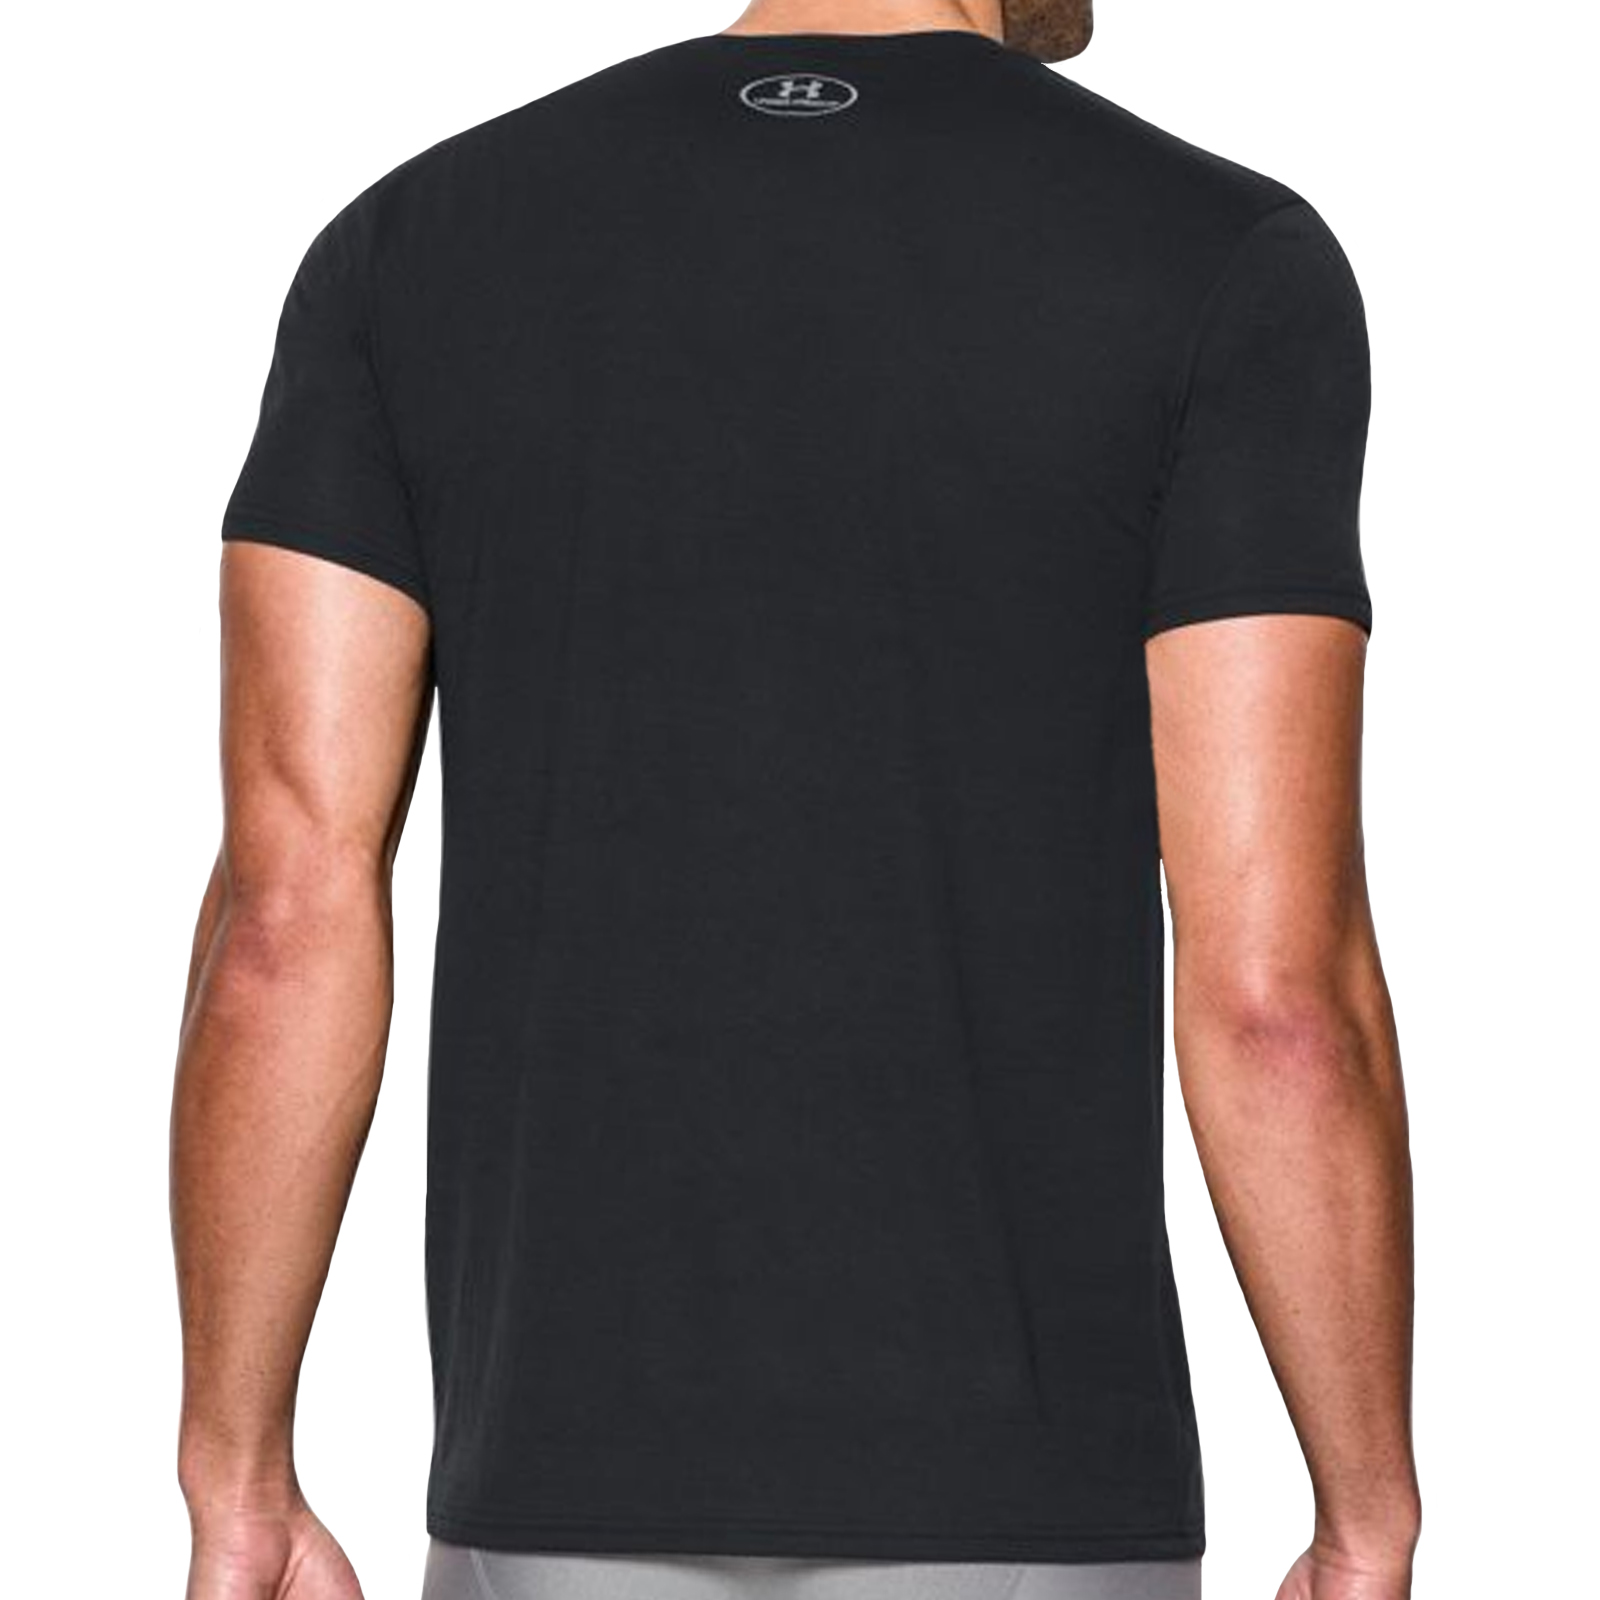 Ejis Sweat Proof Undershirts Men w/Sweat Pads & Silver, Micro Modal Crew Neck Shop Best Sellers· Deals of the Day· Fast Shipping· Read Ratings & Reviews2,,+ followers on Twitter.